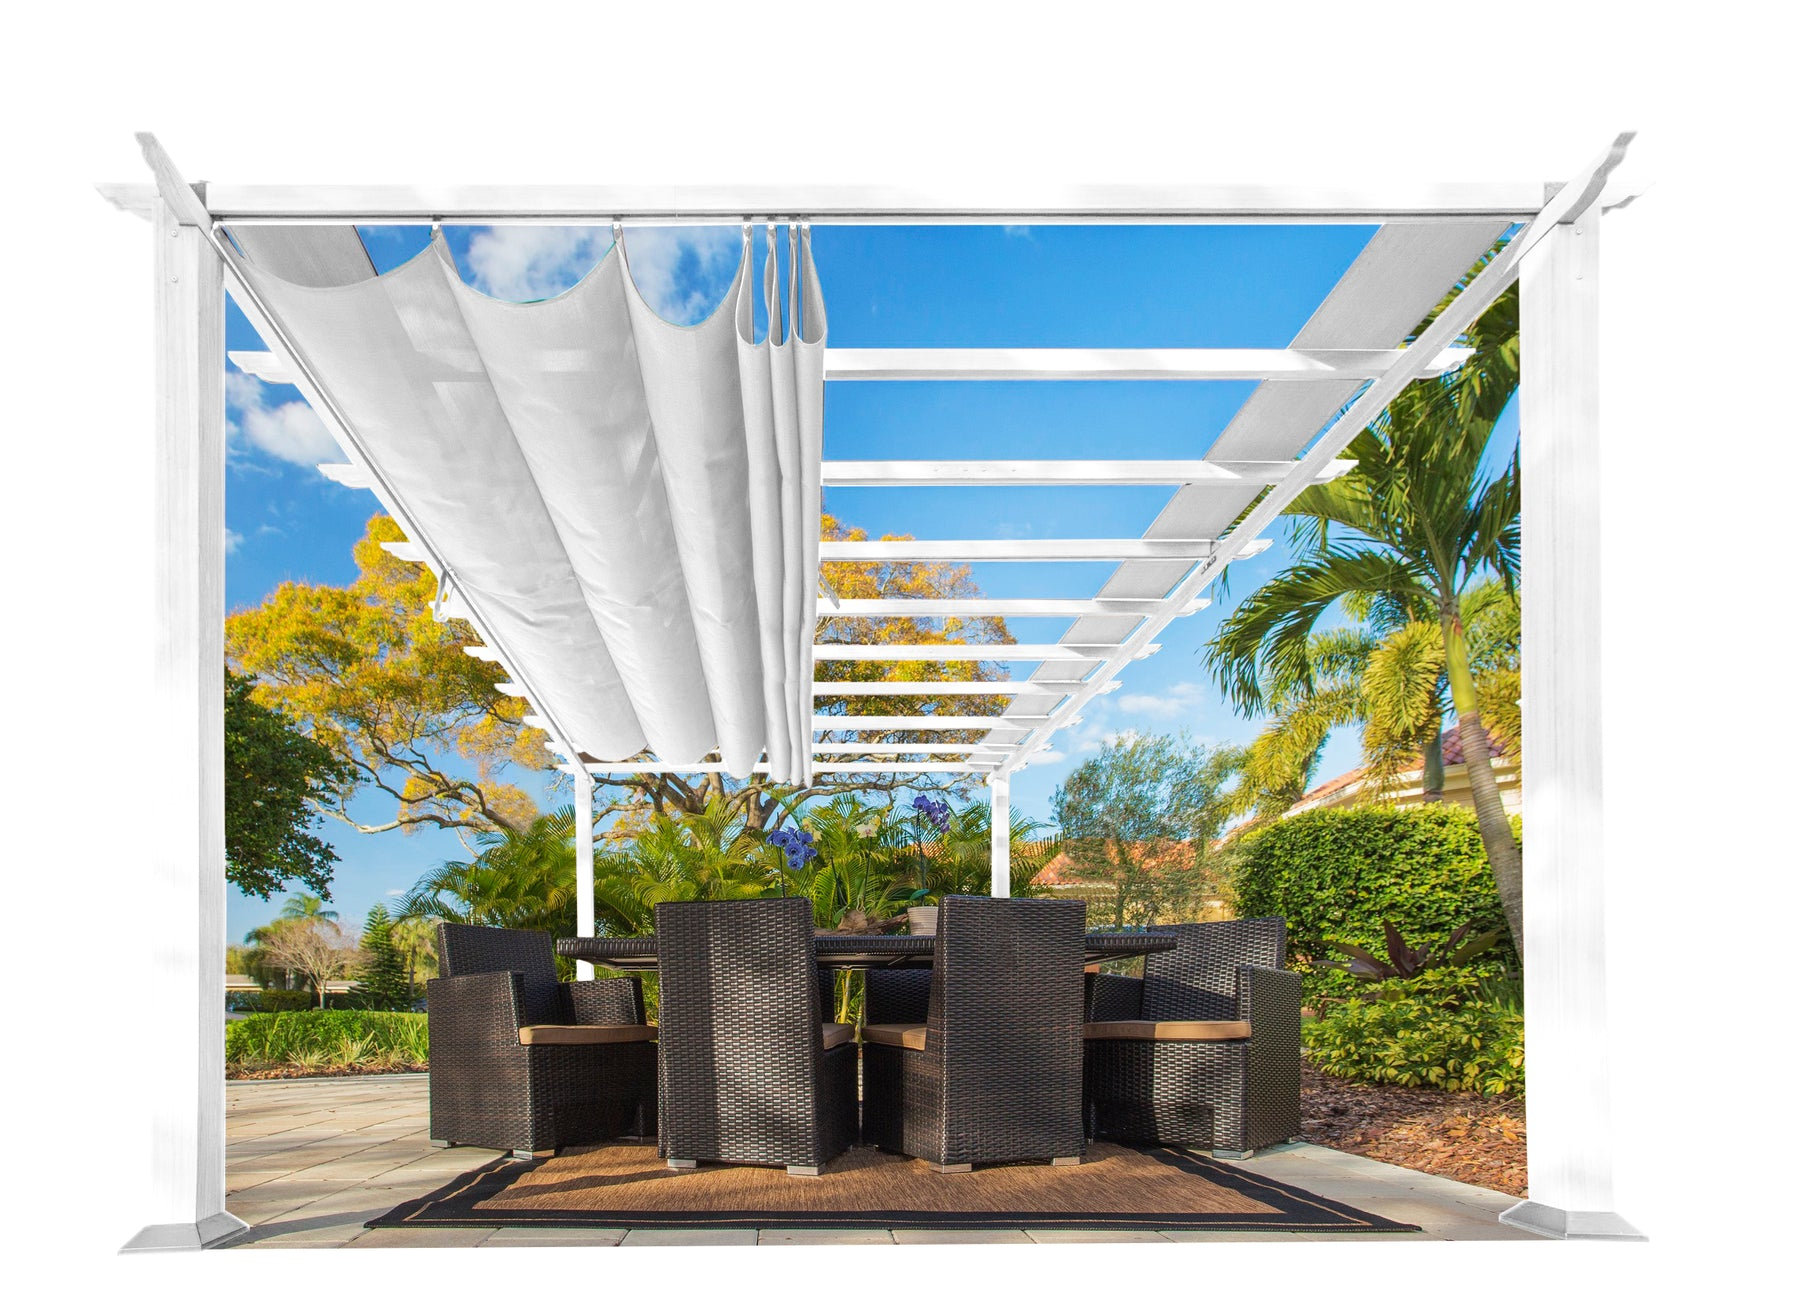 Paragon Outdoor™ Florence White Aluminum Pergola with a White Color Canopy, Size - 11' x 16':Tuff Nest